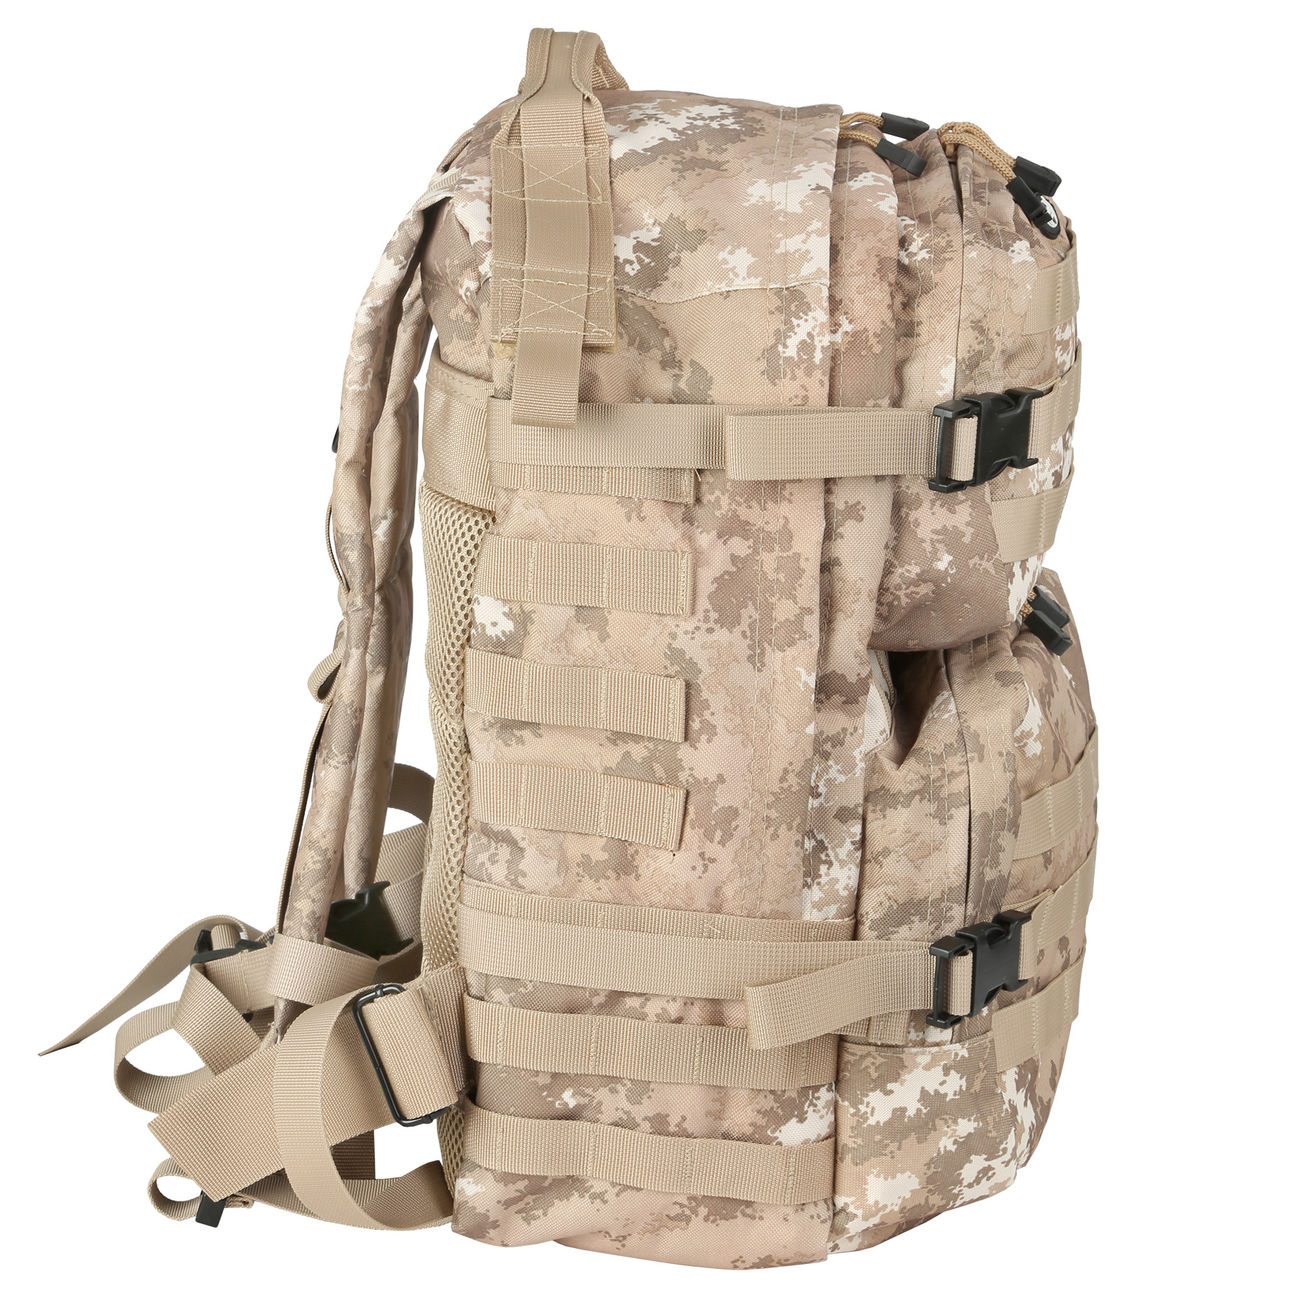 MFH Rucksack US Assault II vegetato desert 1